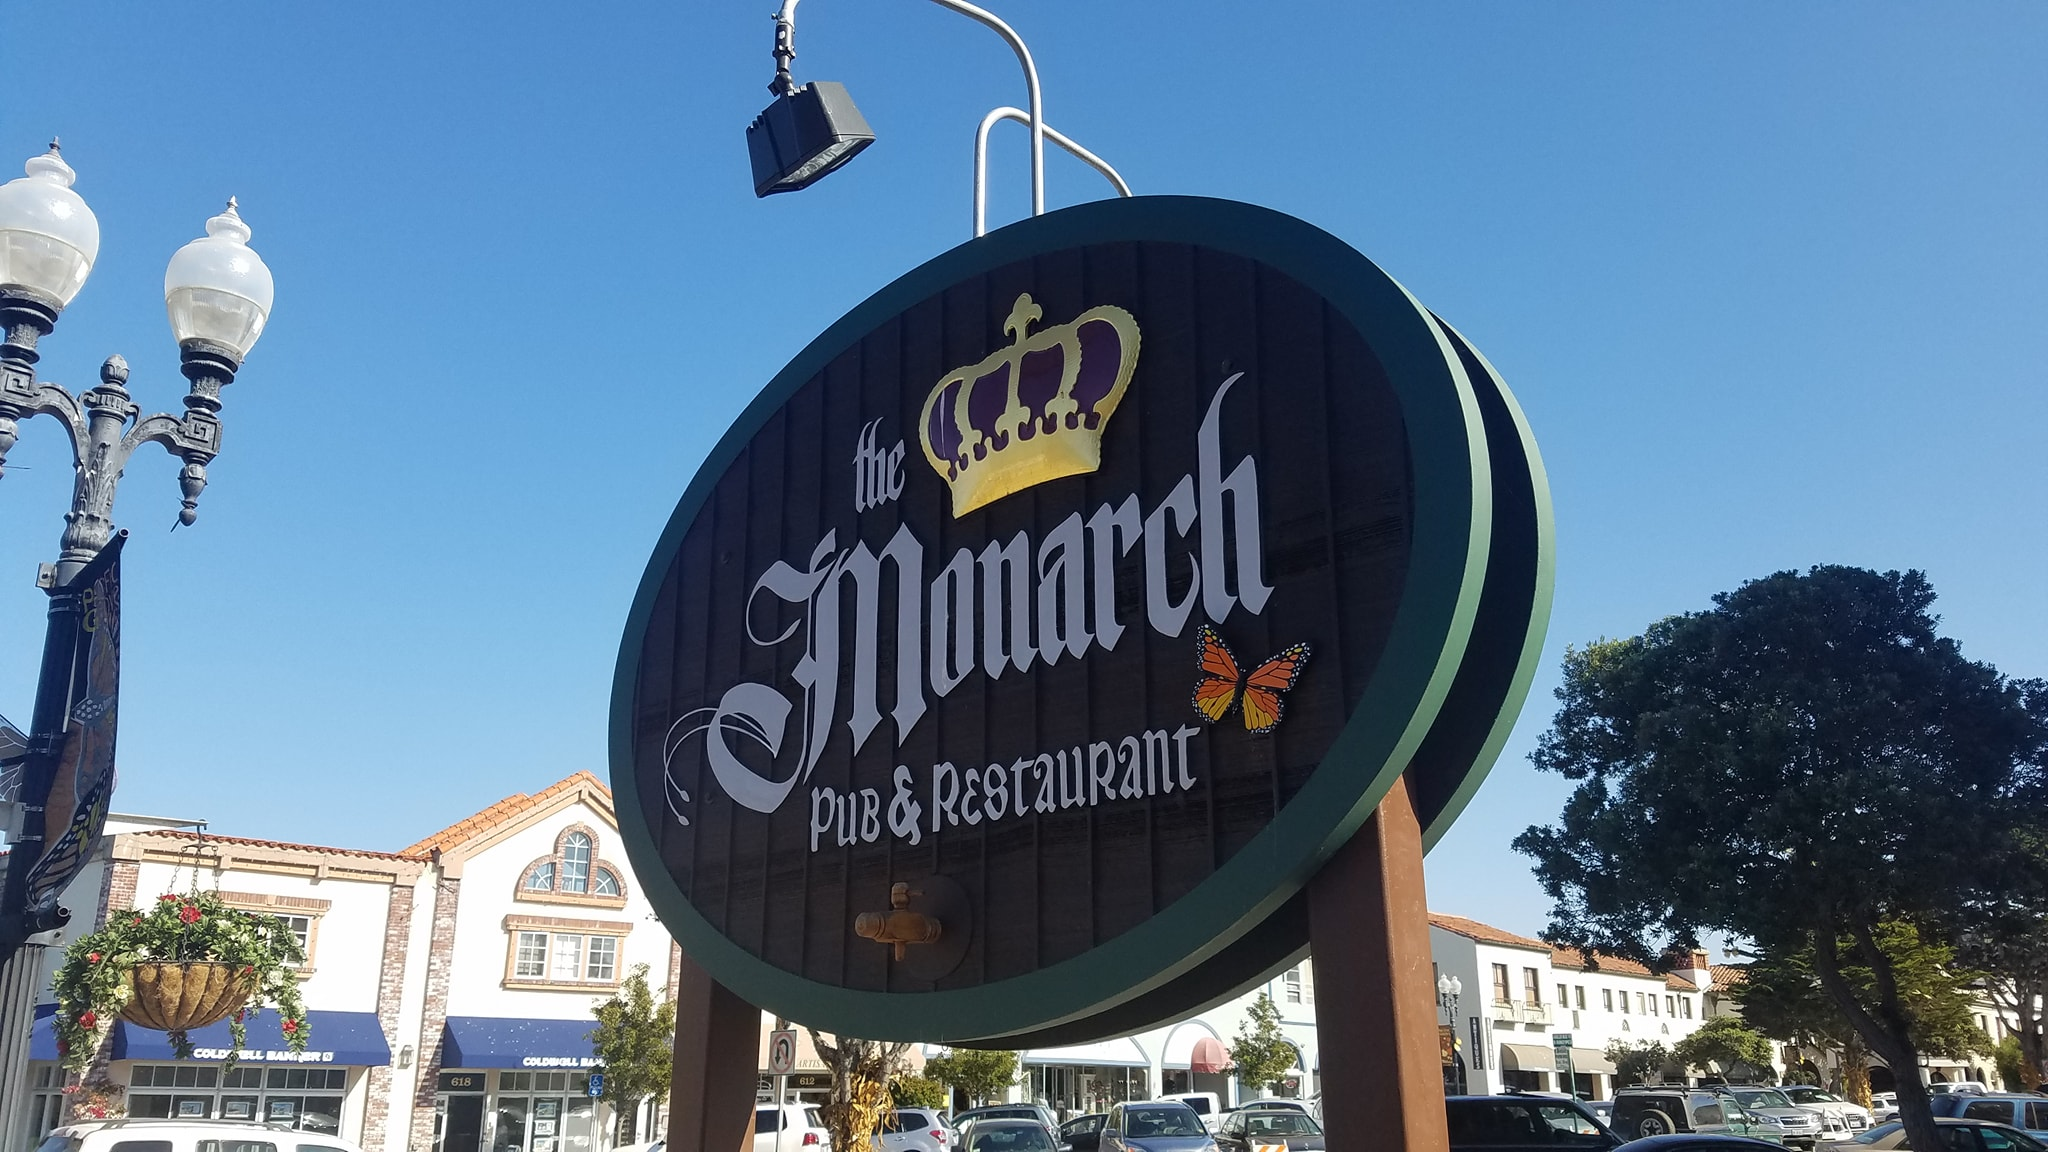 Monarch Pub & Restaurant